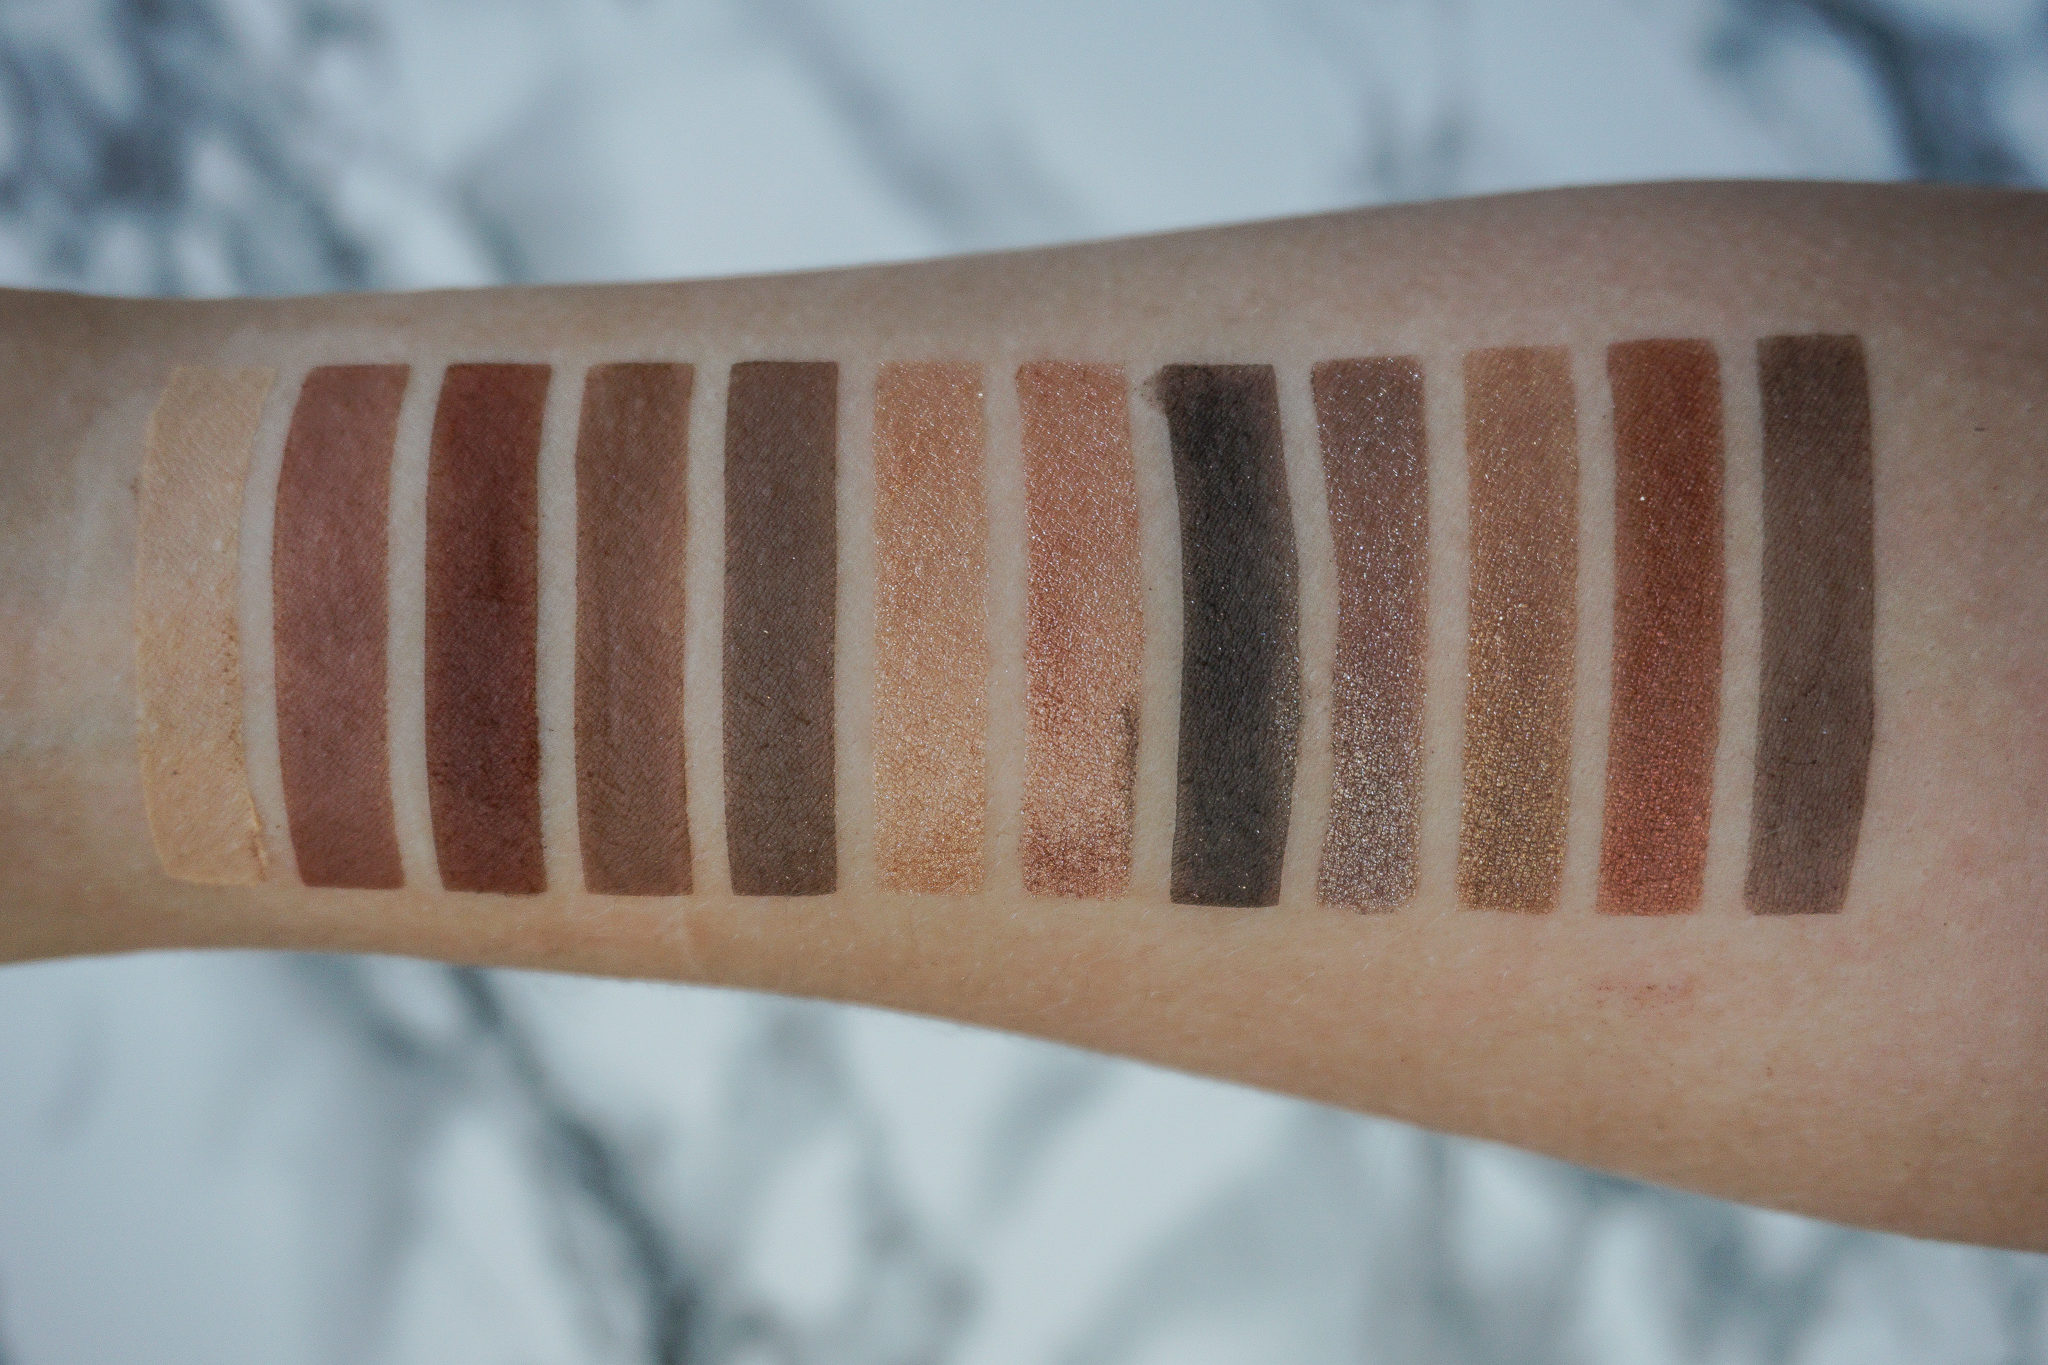 NARS Skin Deep Eye Palette Swatches